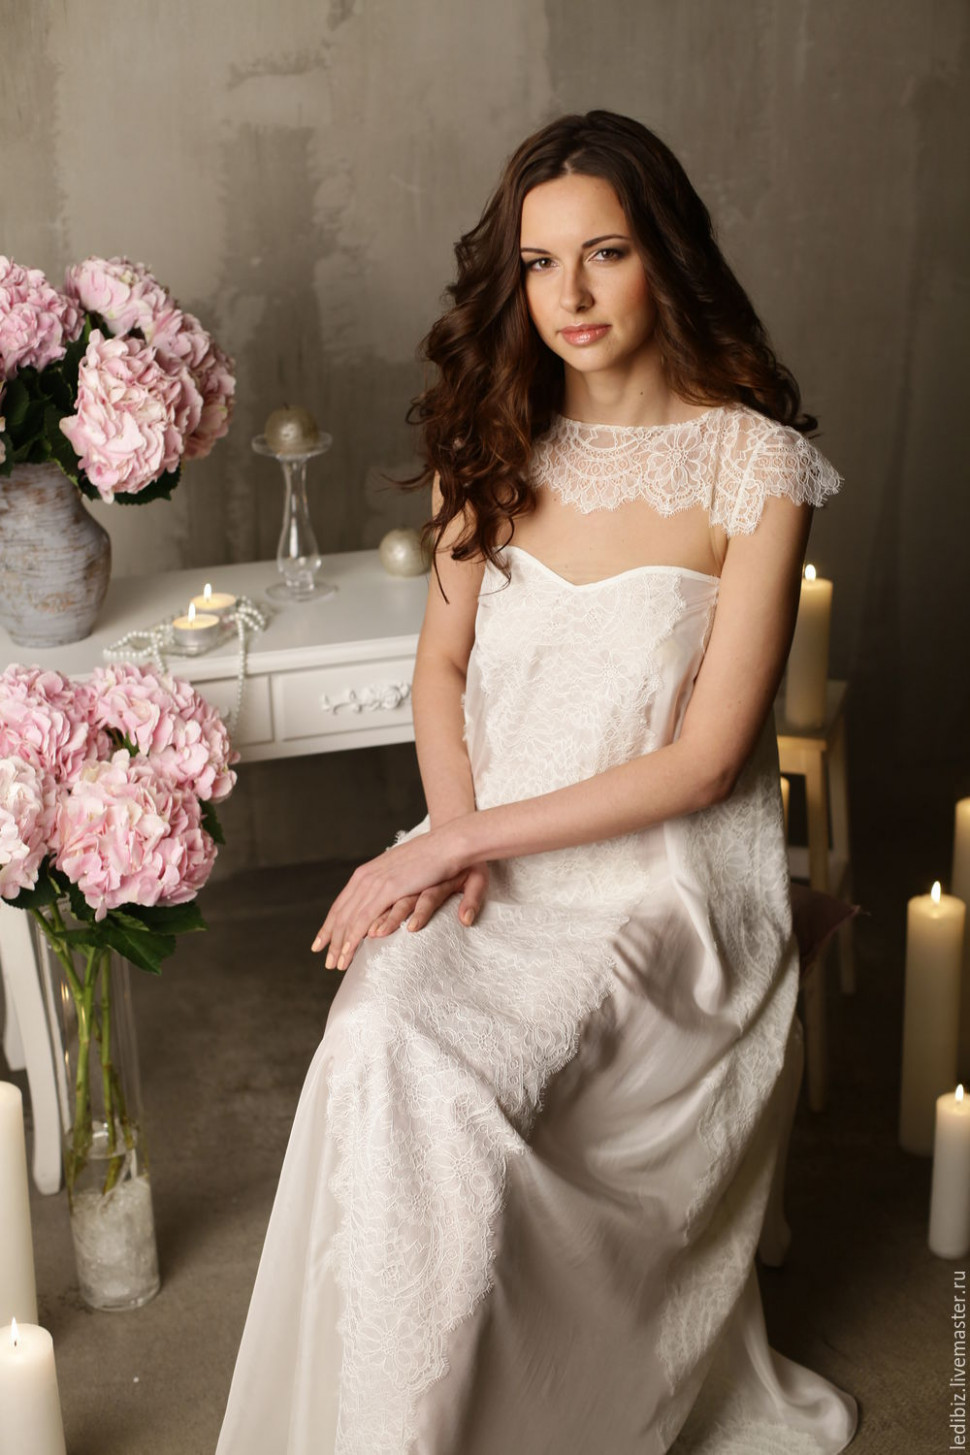 Long Silk Bridal Nightgown With Lace F2, Bridal Lingerie ...